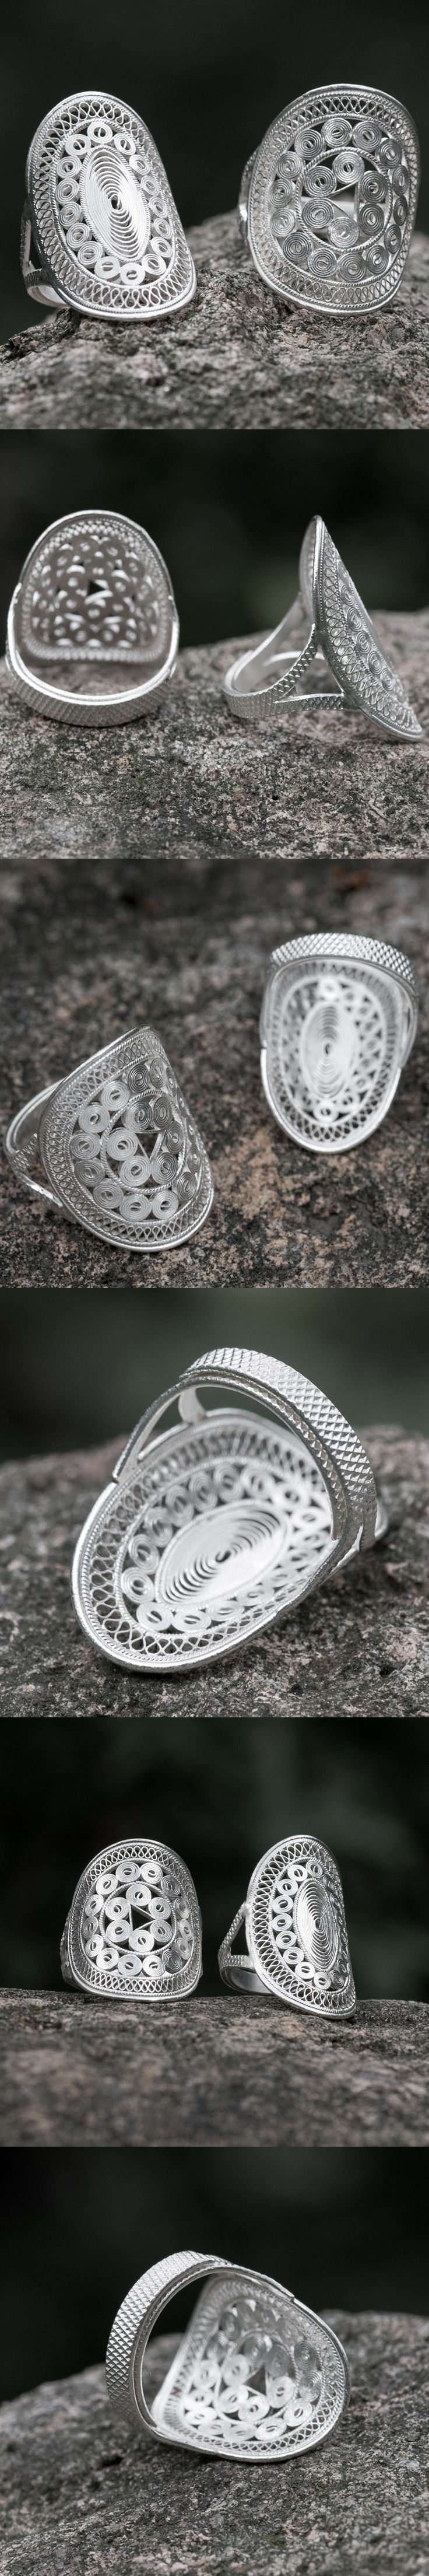 Hot Rings For Women 999 Sterling Silver Handmade  Round Triangle Rings Hallow Out China Style Simple and Generous Gift